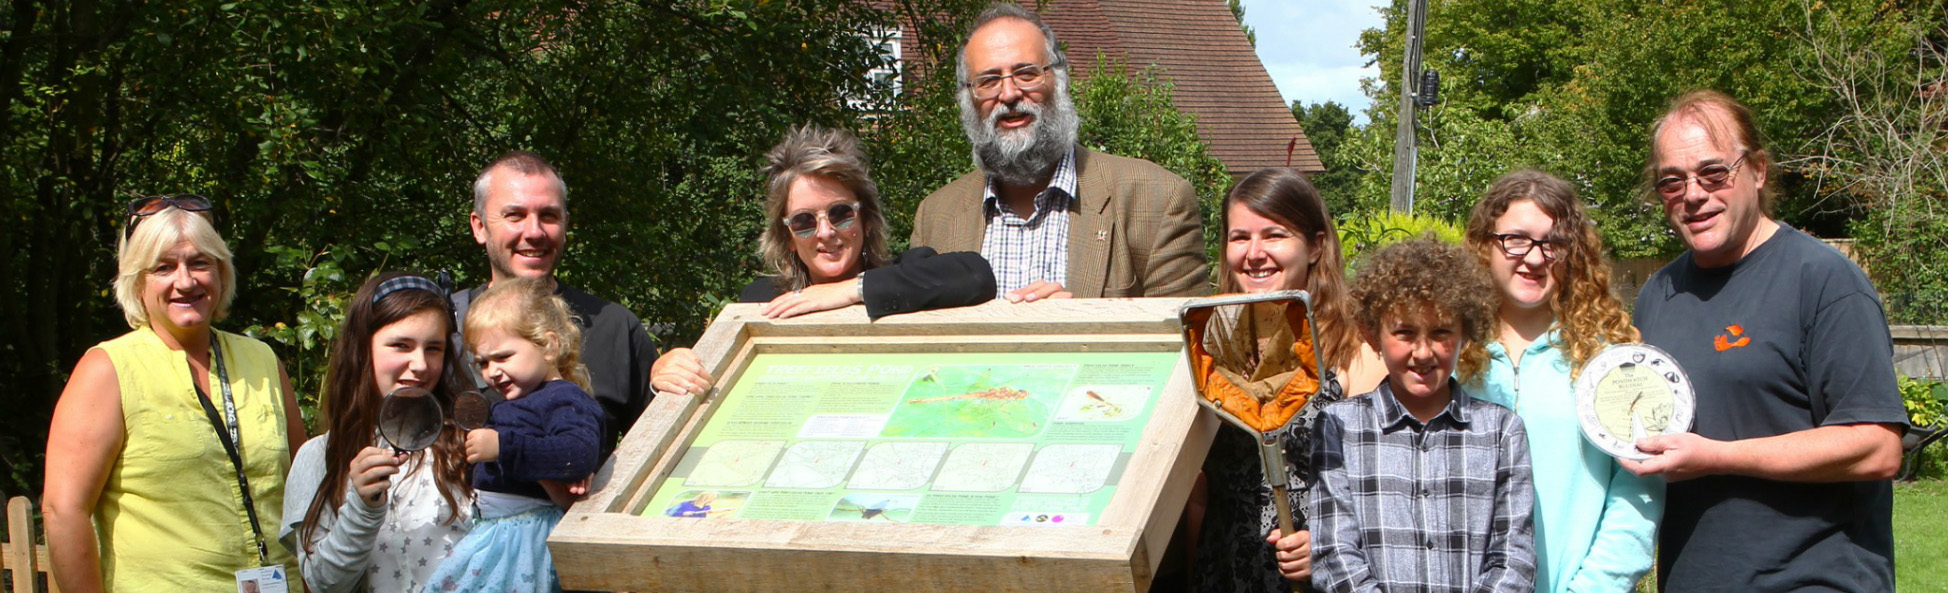 New interpretive board pays tribute to Ryde's rural history